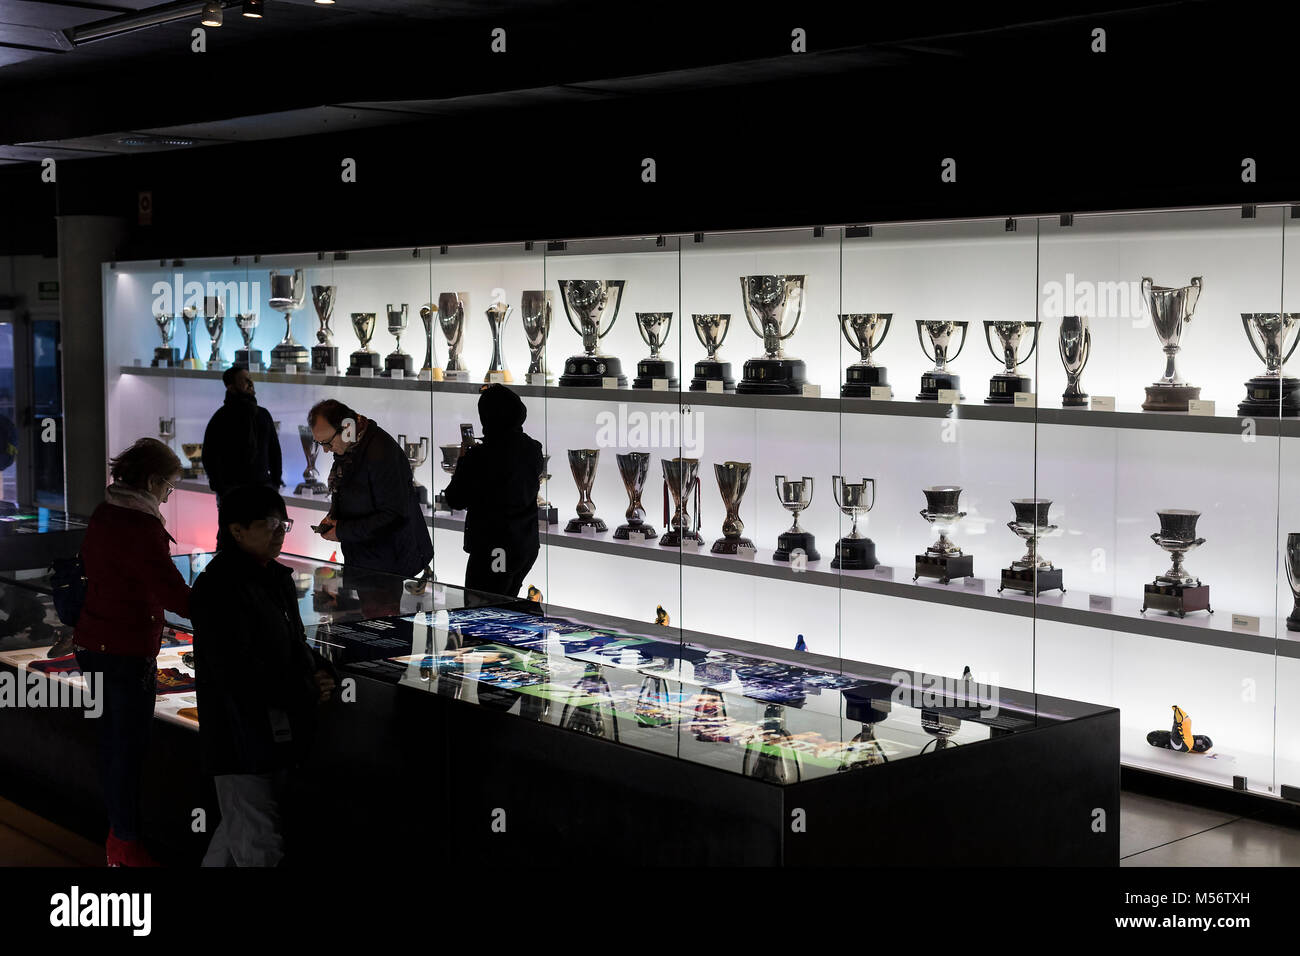 BARCELONA, SPAIN - 12 JANUARY 2018: The museum of trophies of the cups and awards of the team FC Barcelona in the - Stock Image